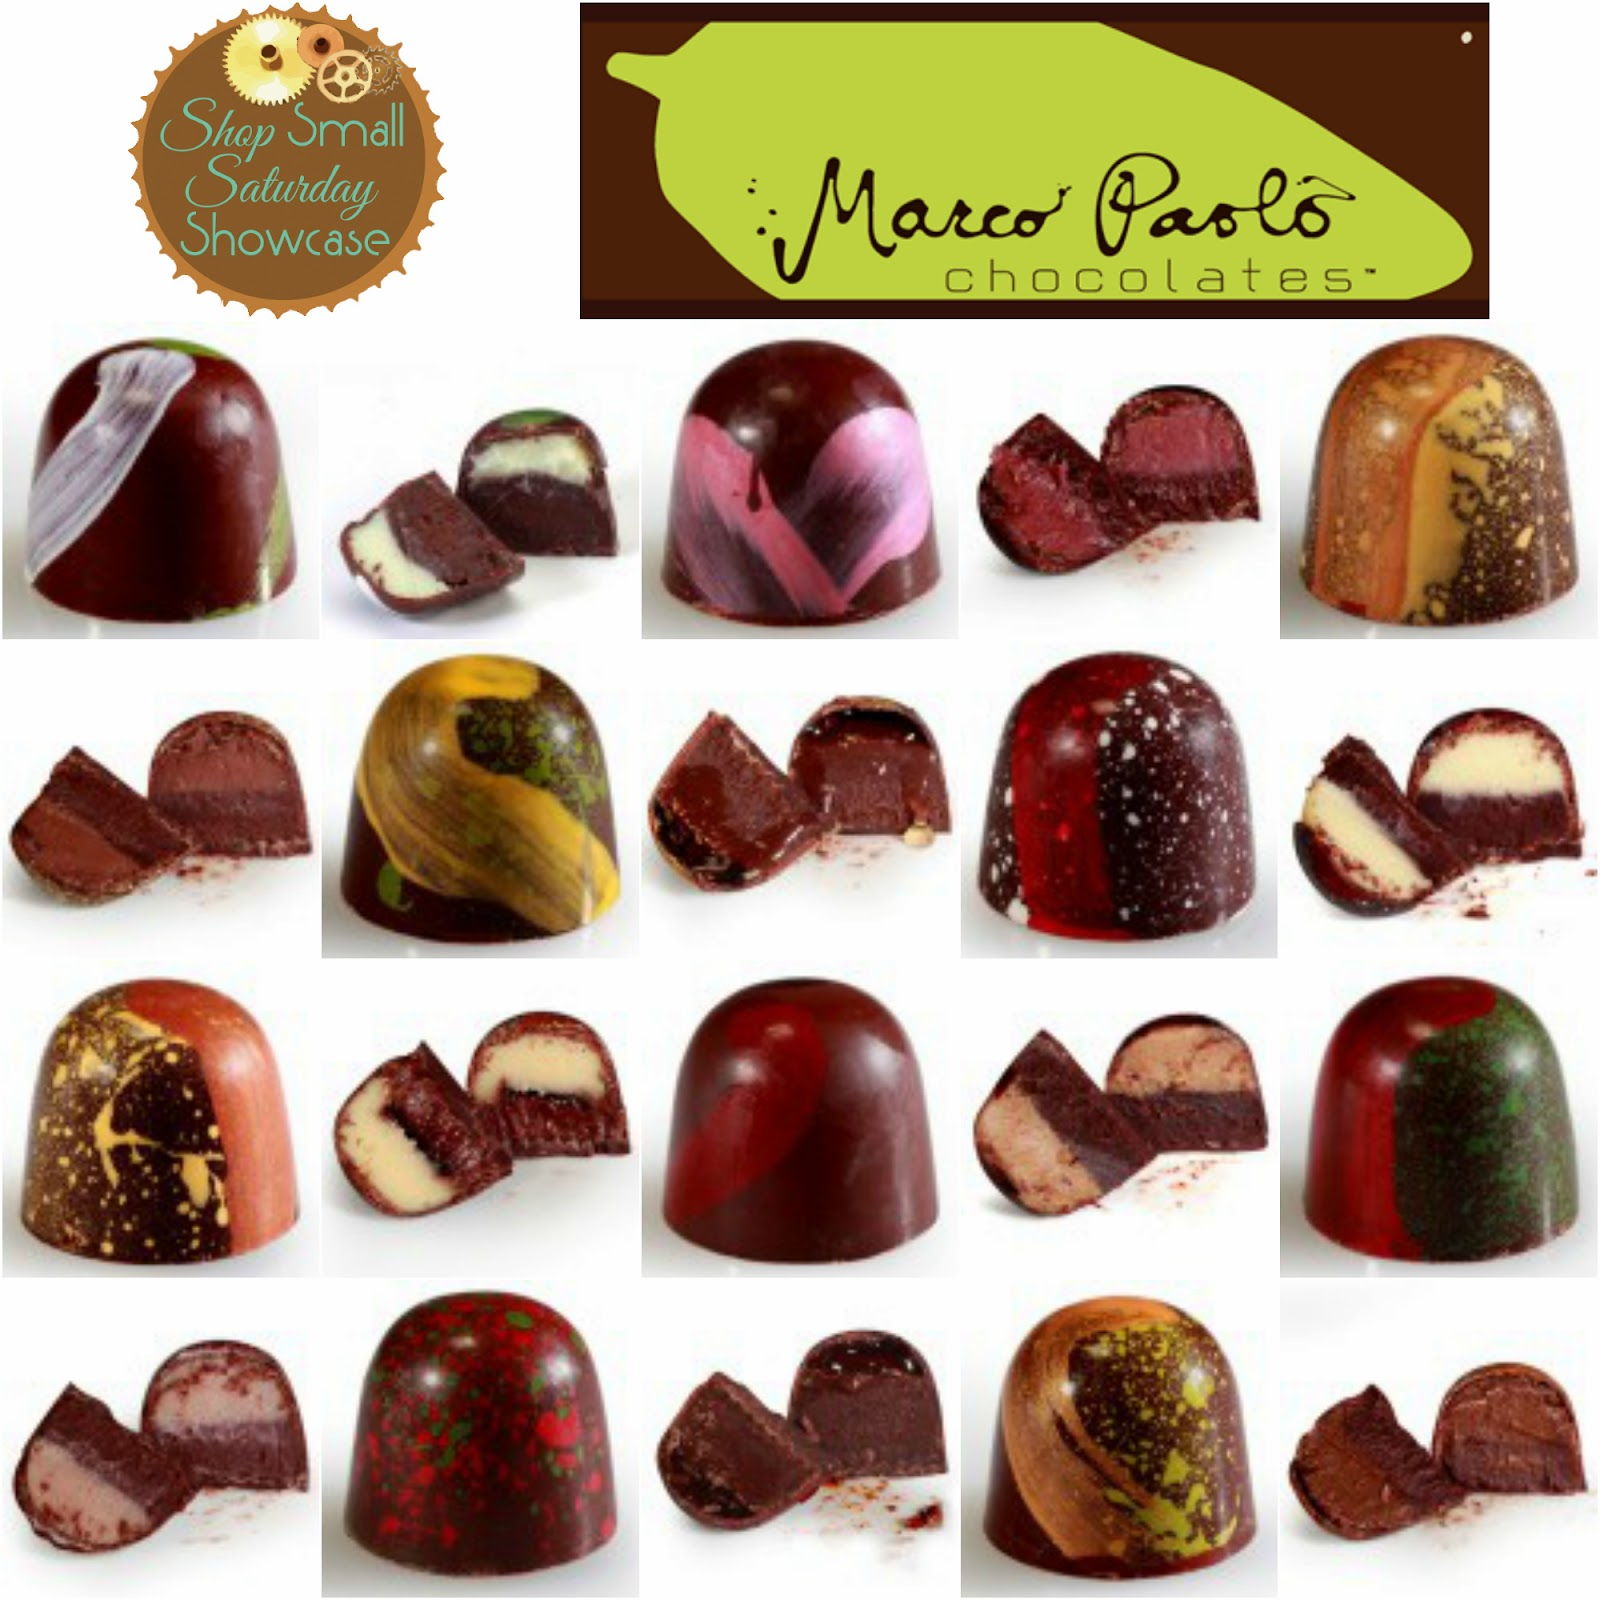 Marco Paolo Chocolates feature, GIVEAWAY & promo! on Shop Small Saturday Showcase at Diane's Vintage Zest!